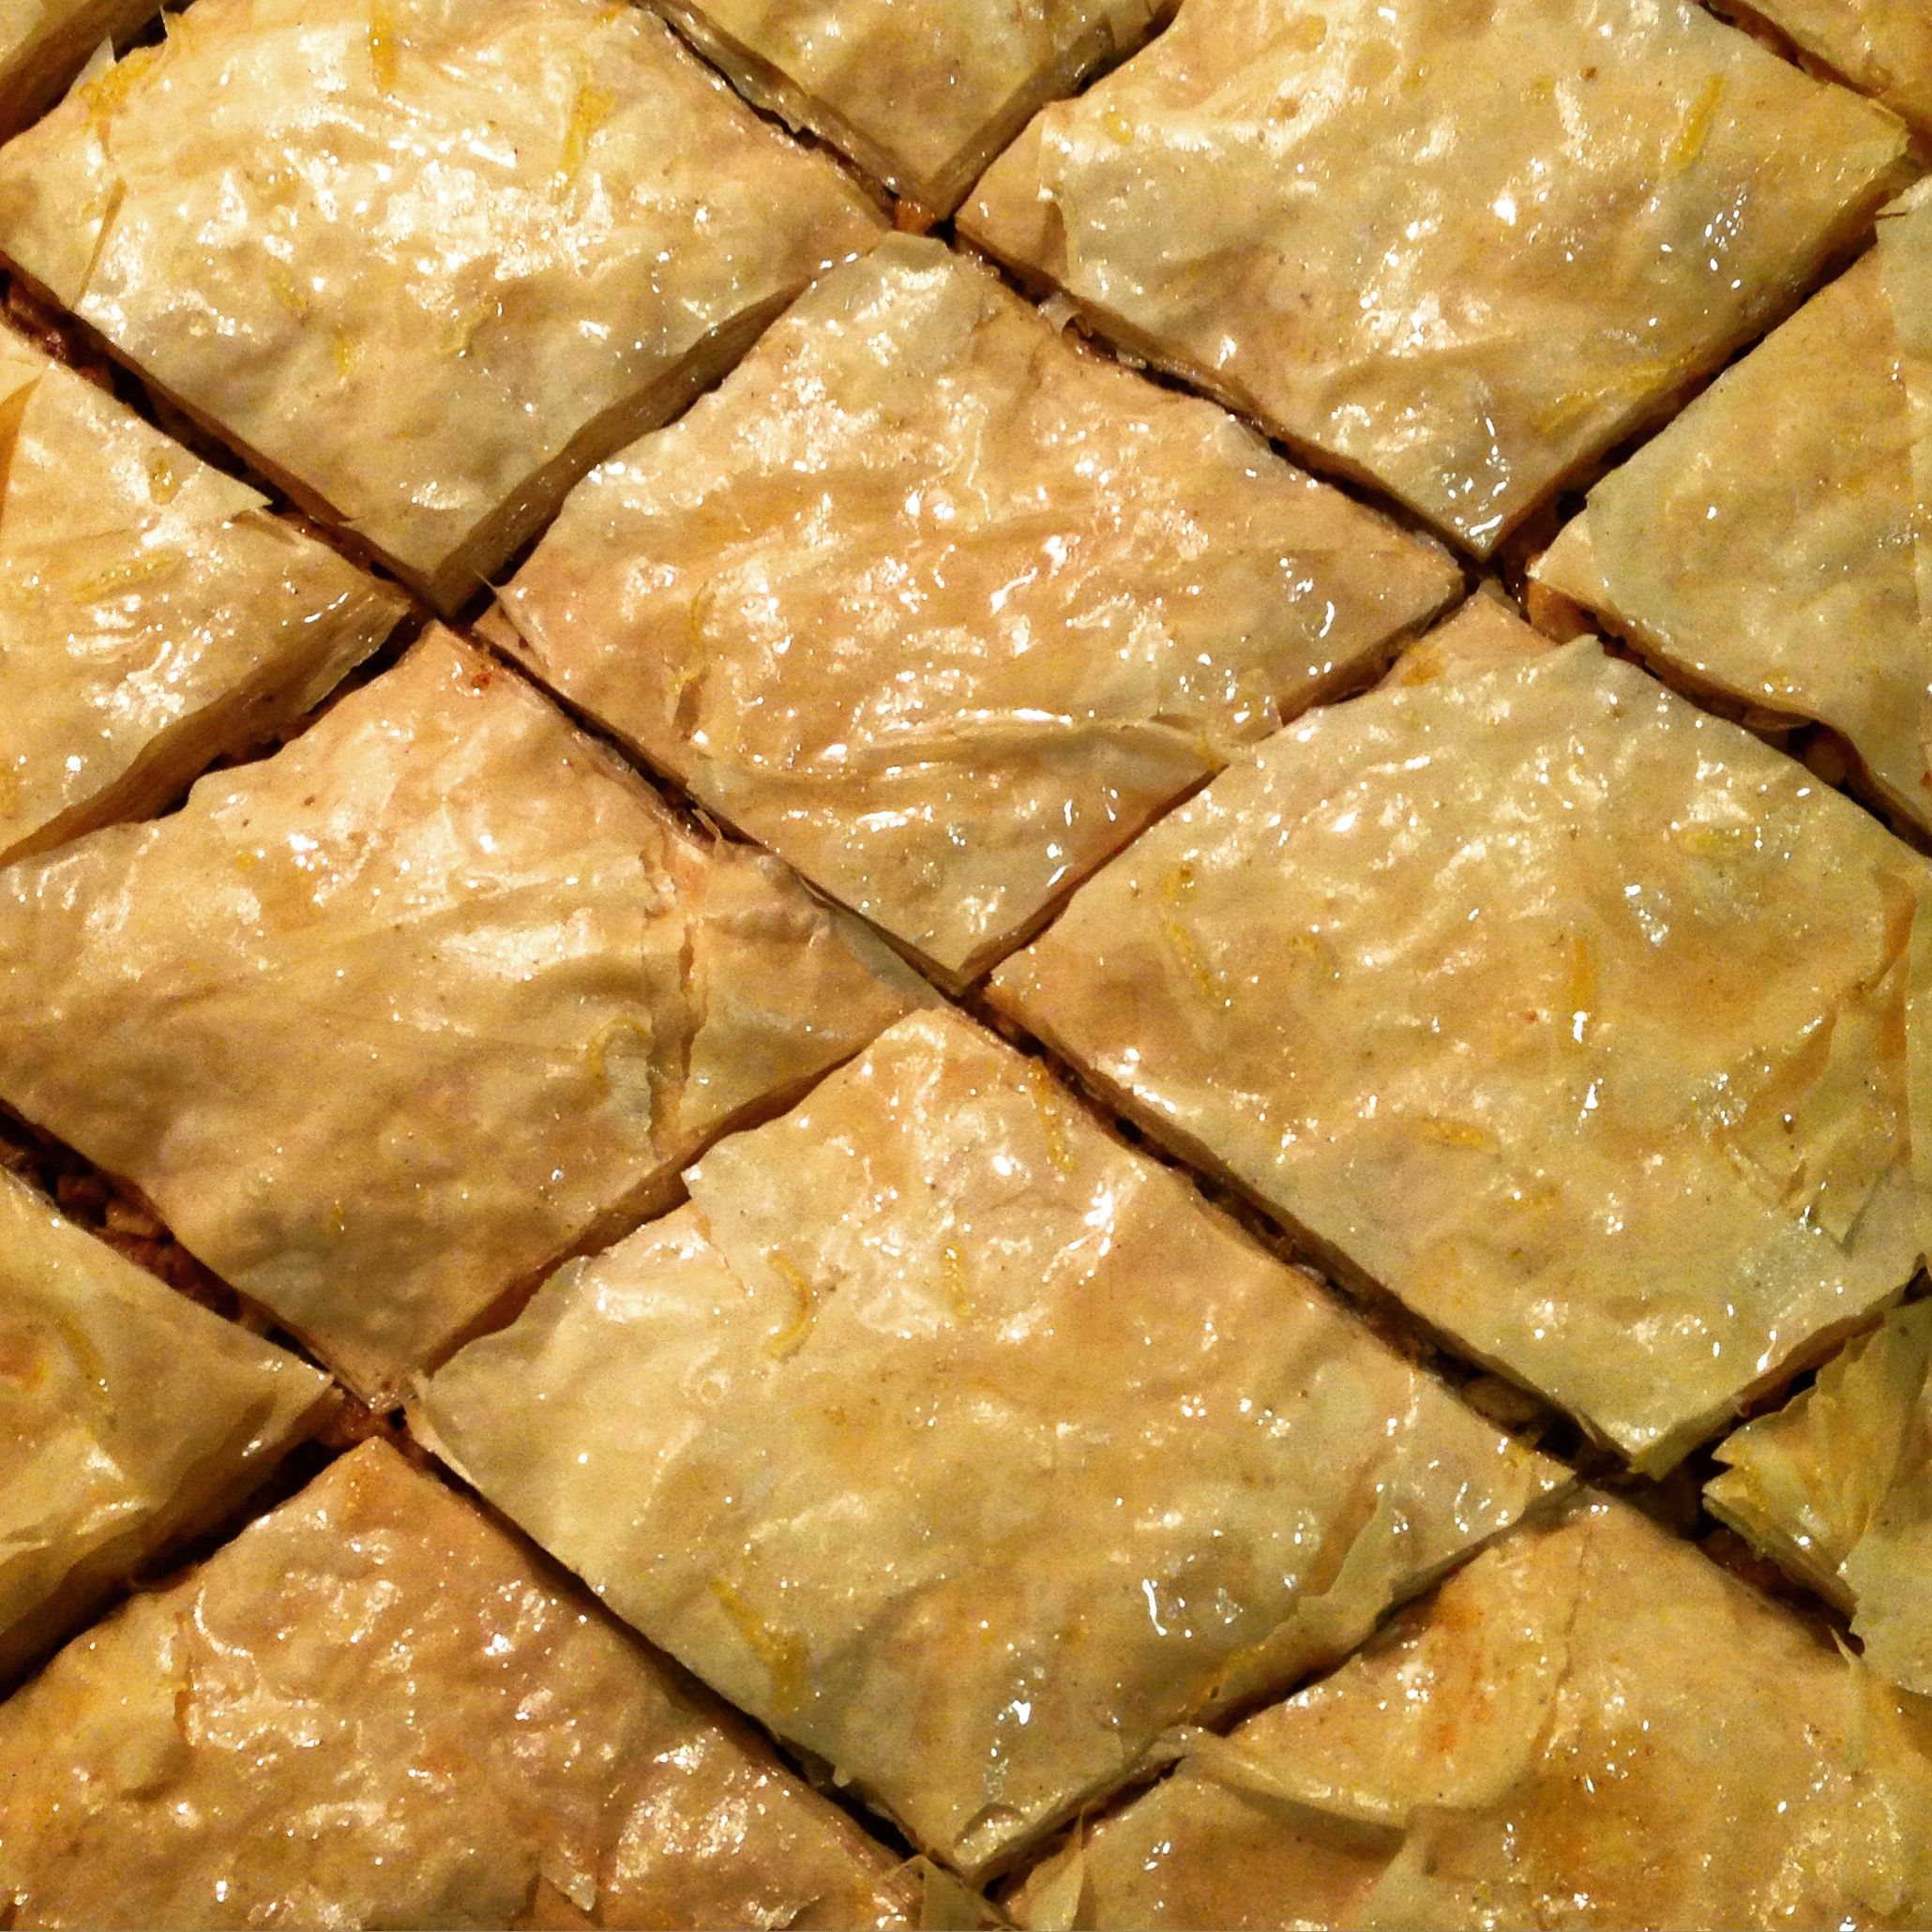 Watch how easy it is to make baklava at home dessert greek watch how easy it is to make baklava at home dessert greek forumfinder Gallery